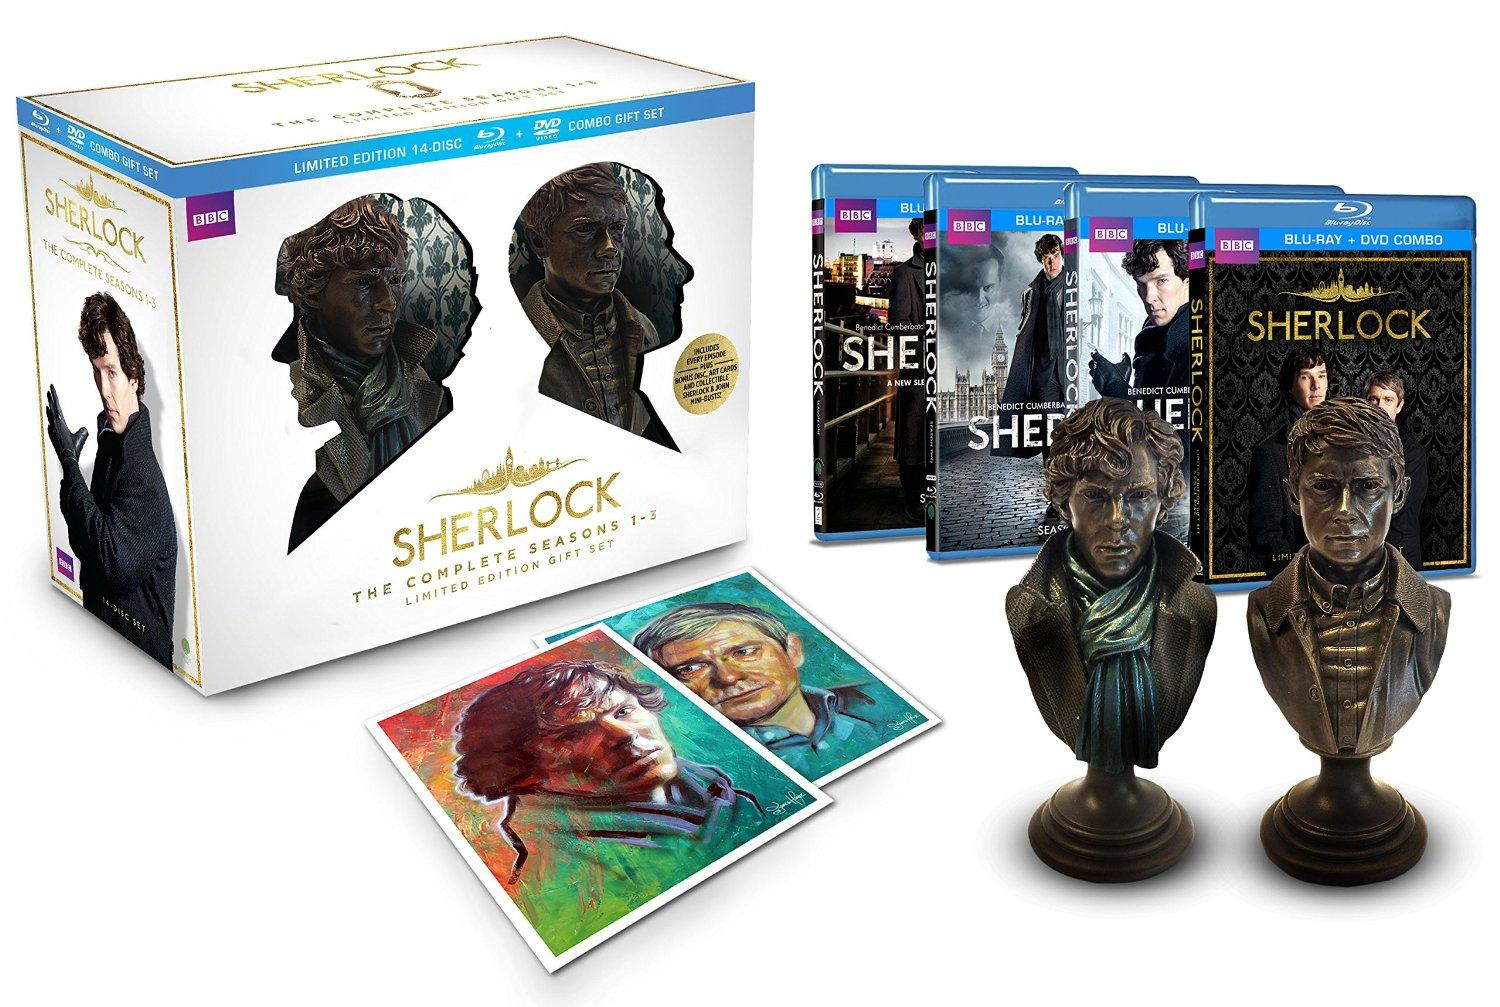 $115.49 Sherlock Limited Edition Gift Set (The Complete Seasons 1-3 Blu-ray/DVD Combo)